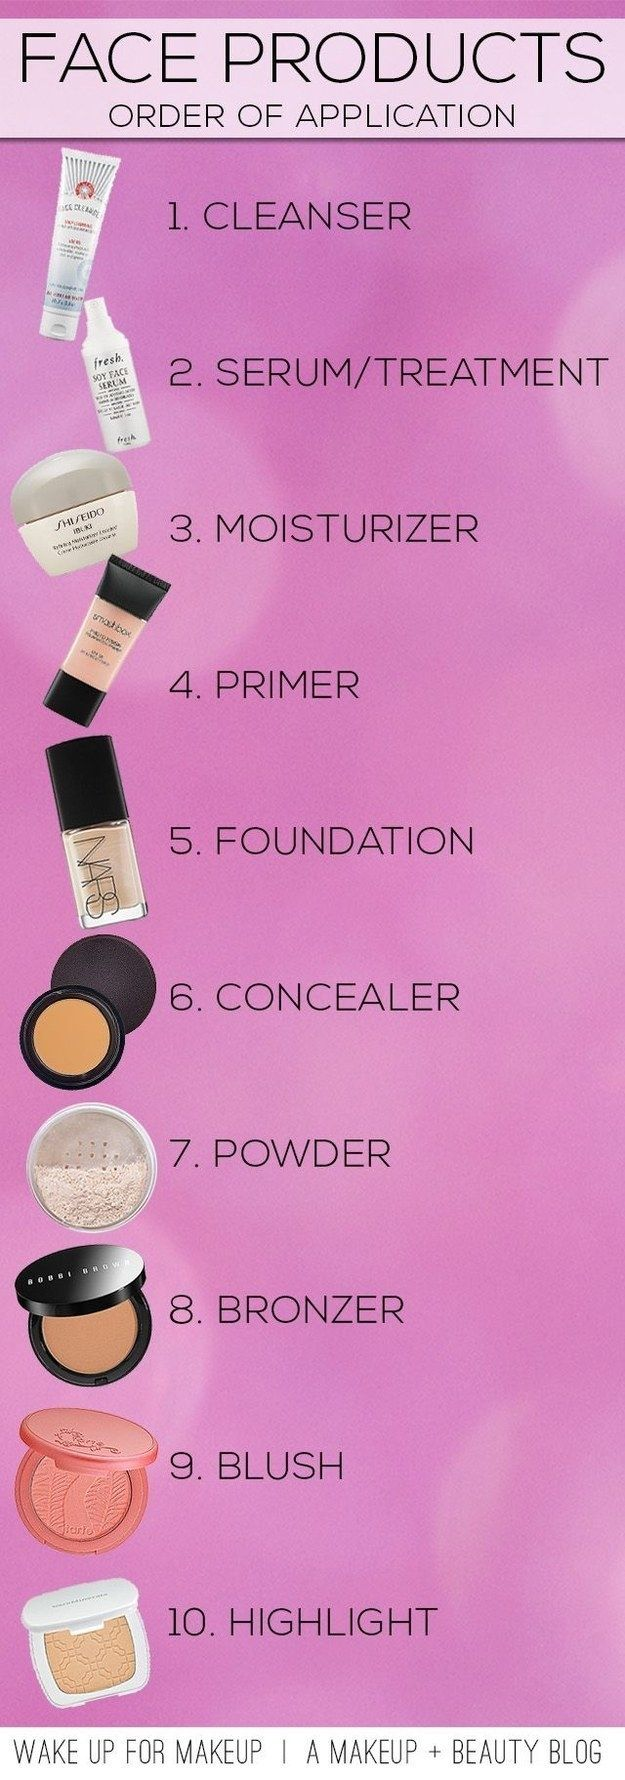 17 Charts That'll Make Buying Makeup So Much Easier...